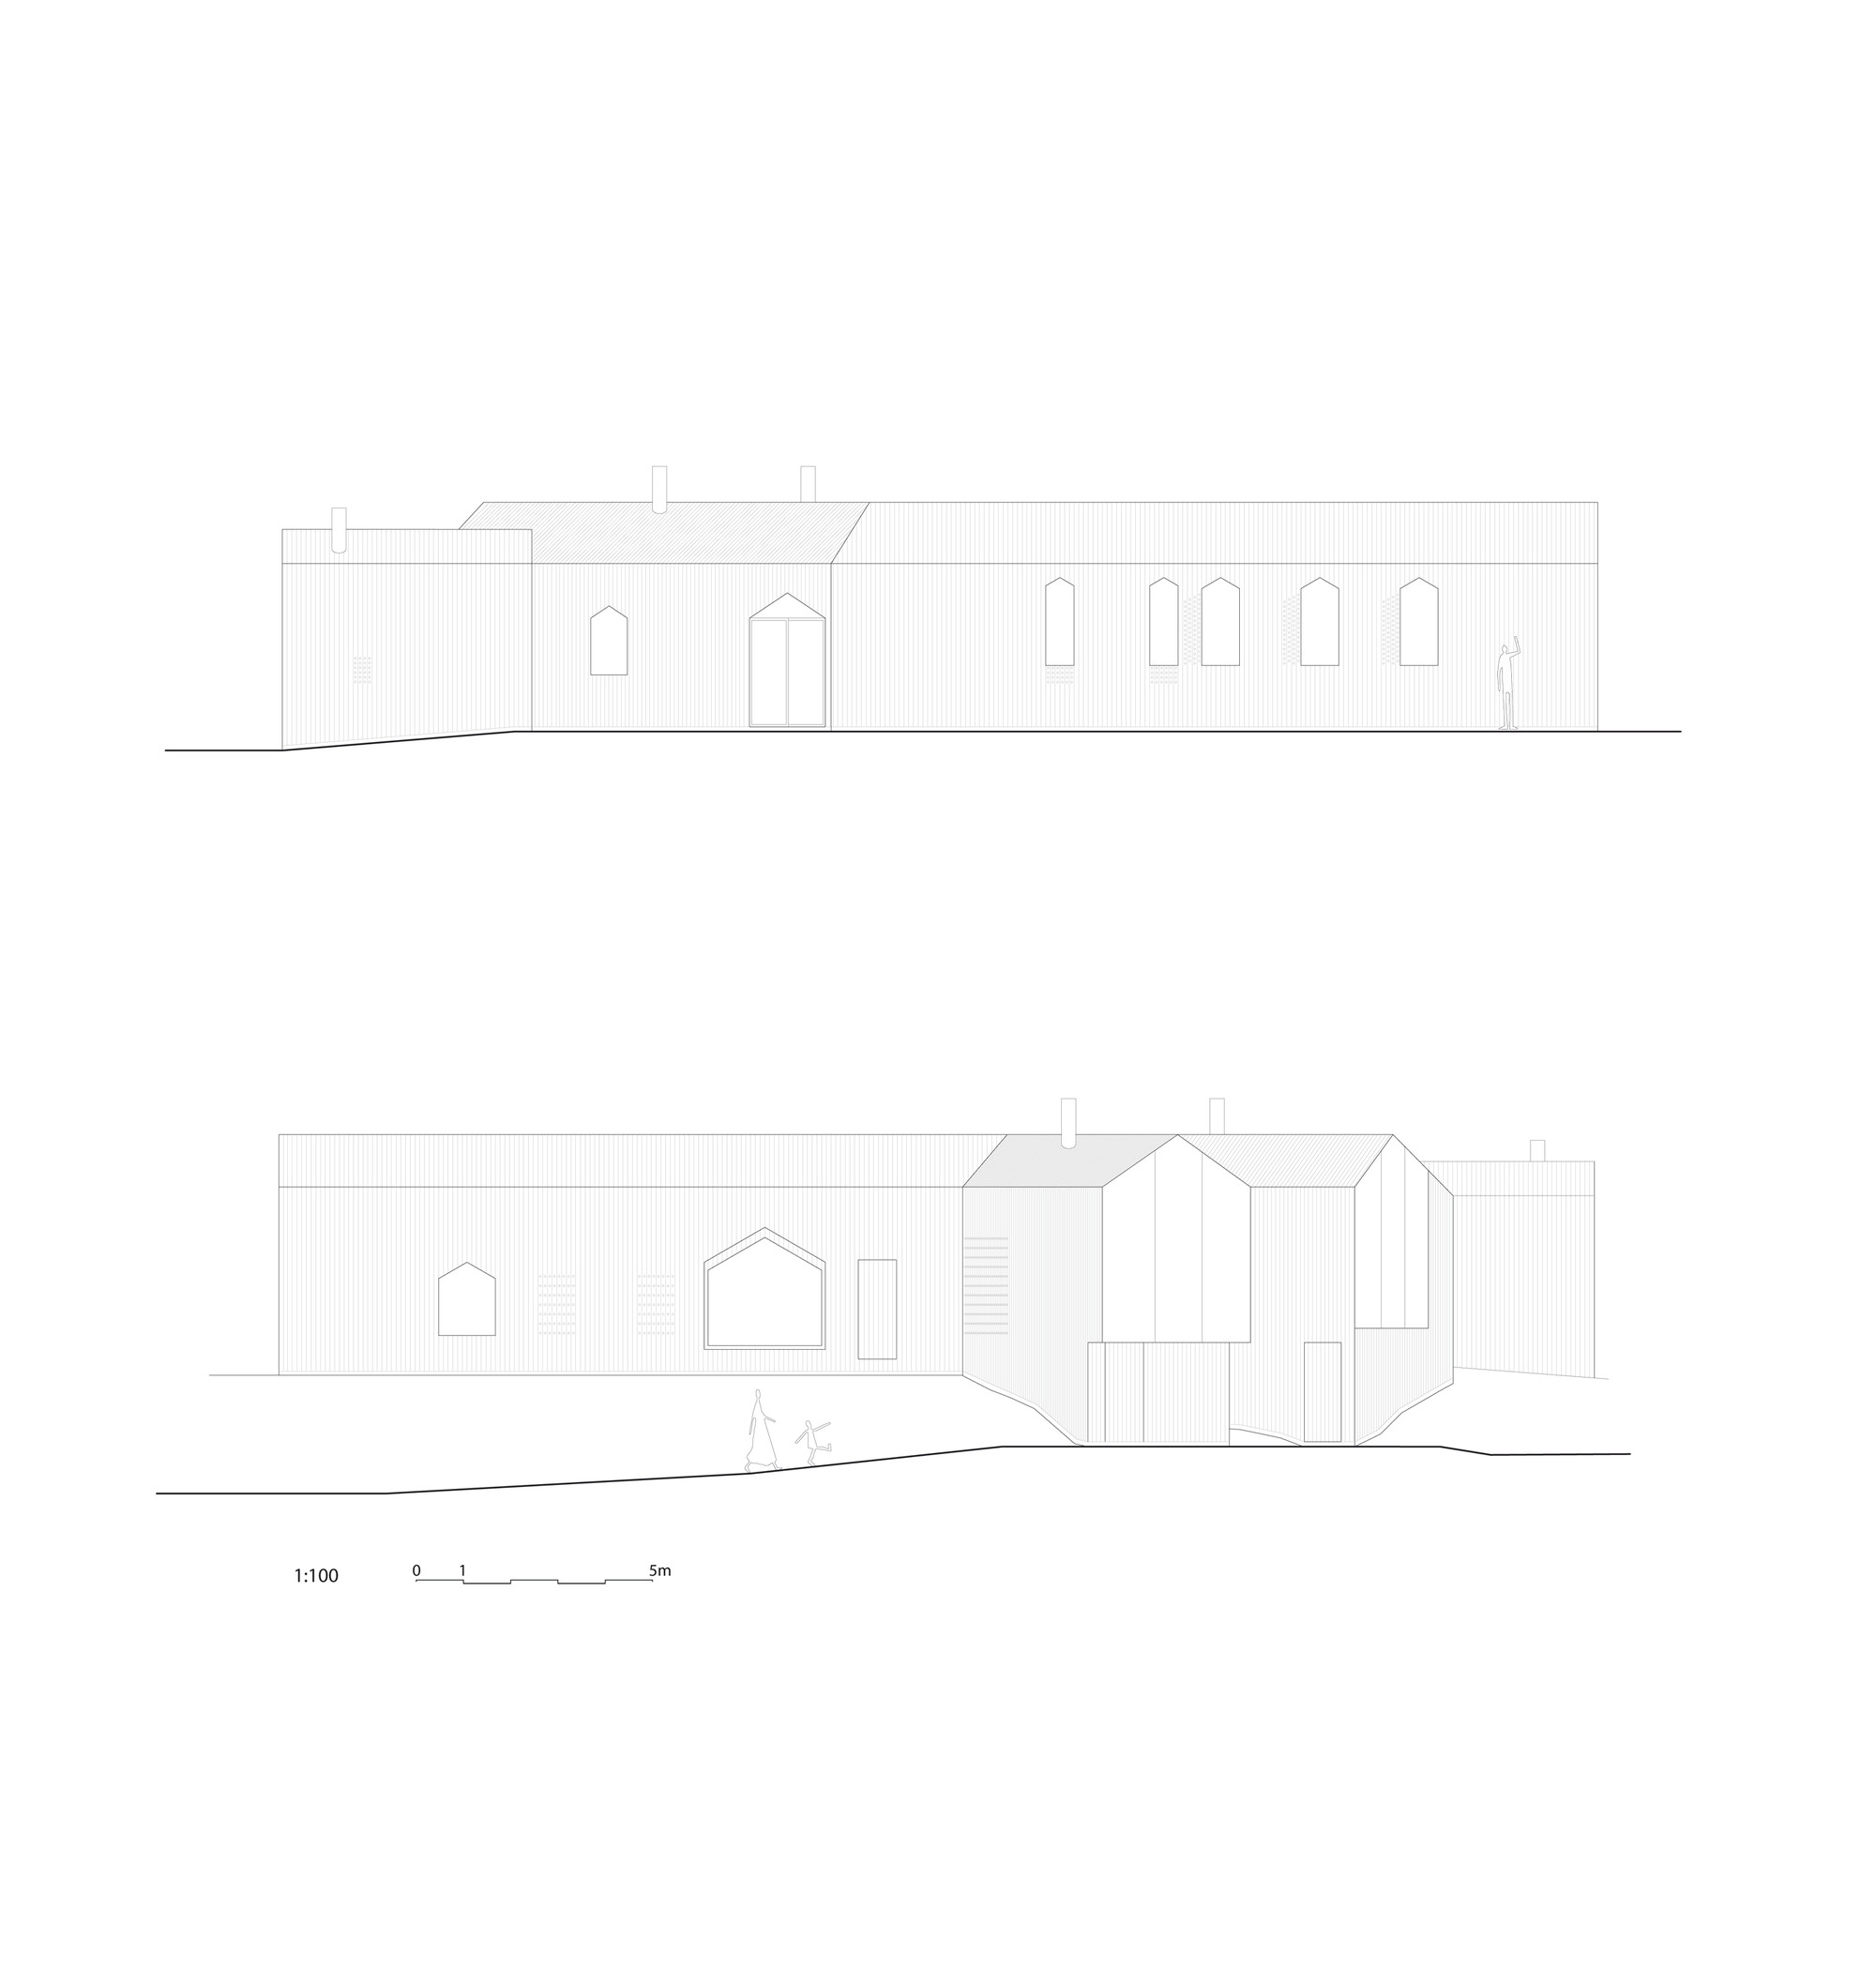 Elevations: South and North